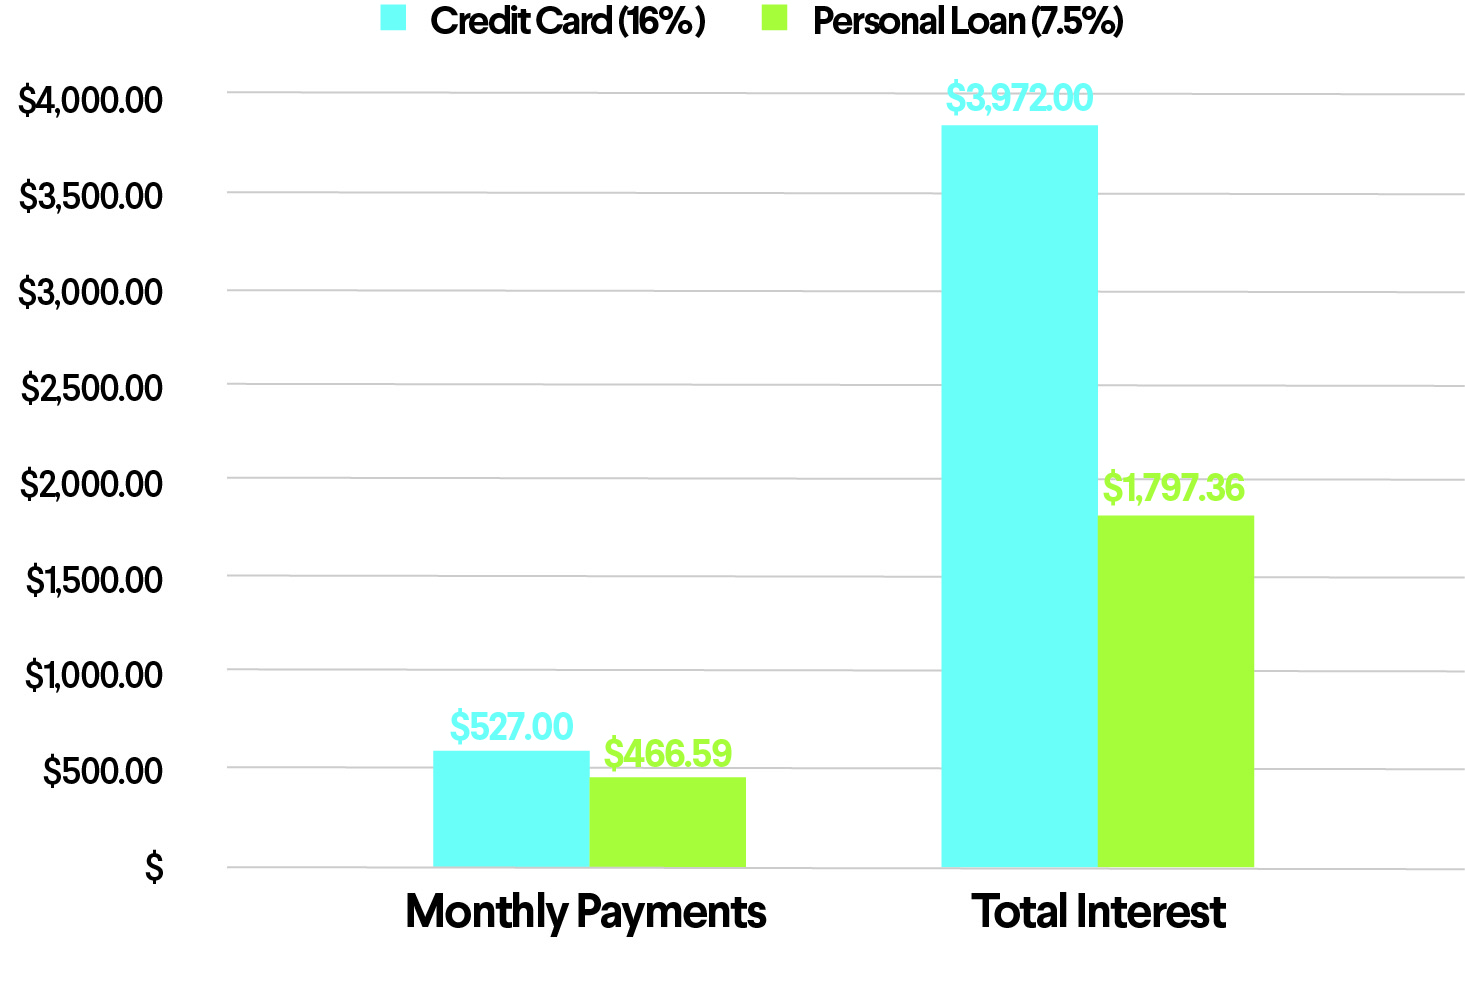 High interest credit card Vs. Personal Loan